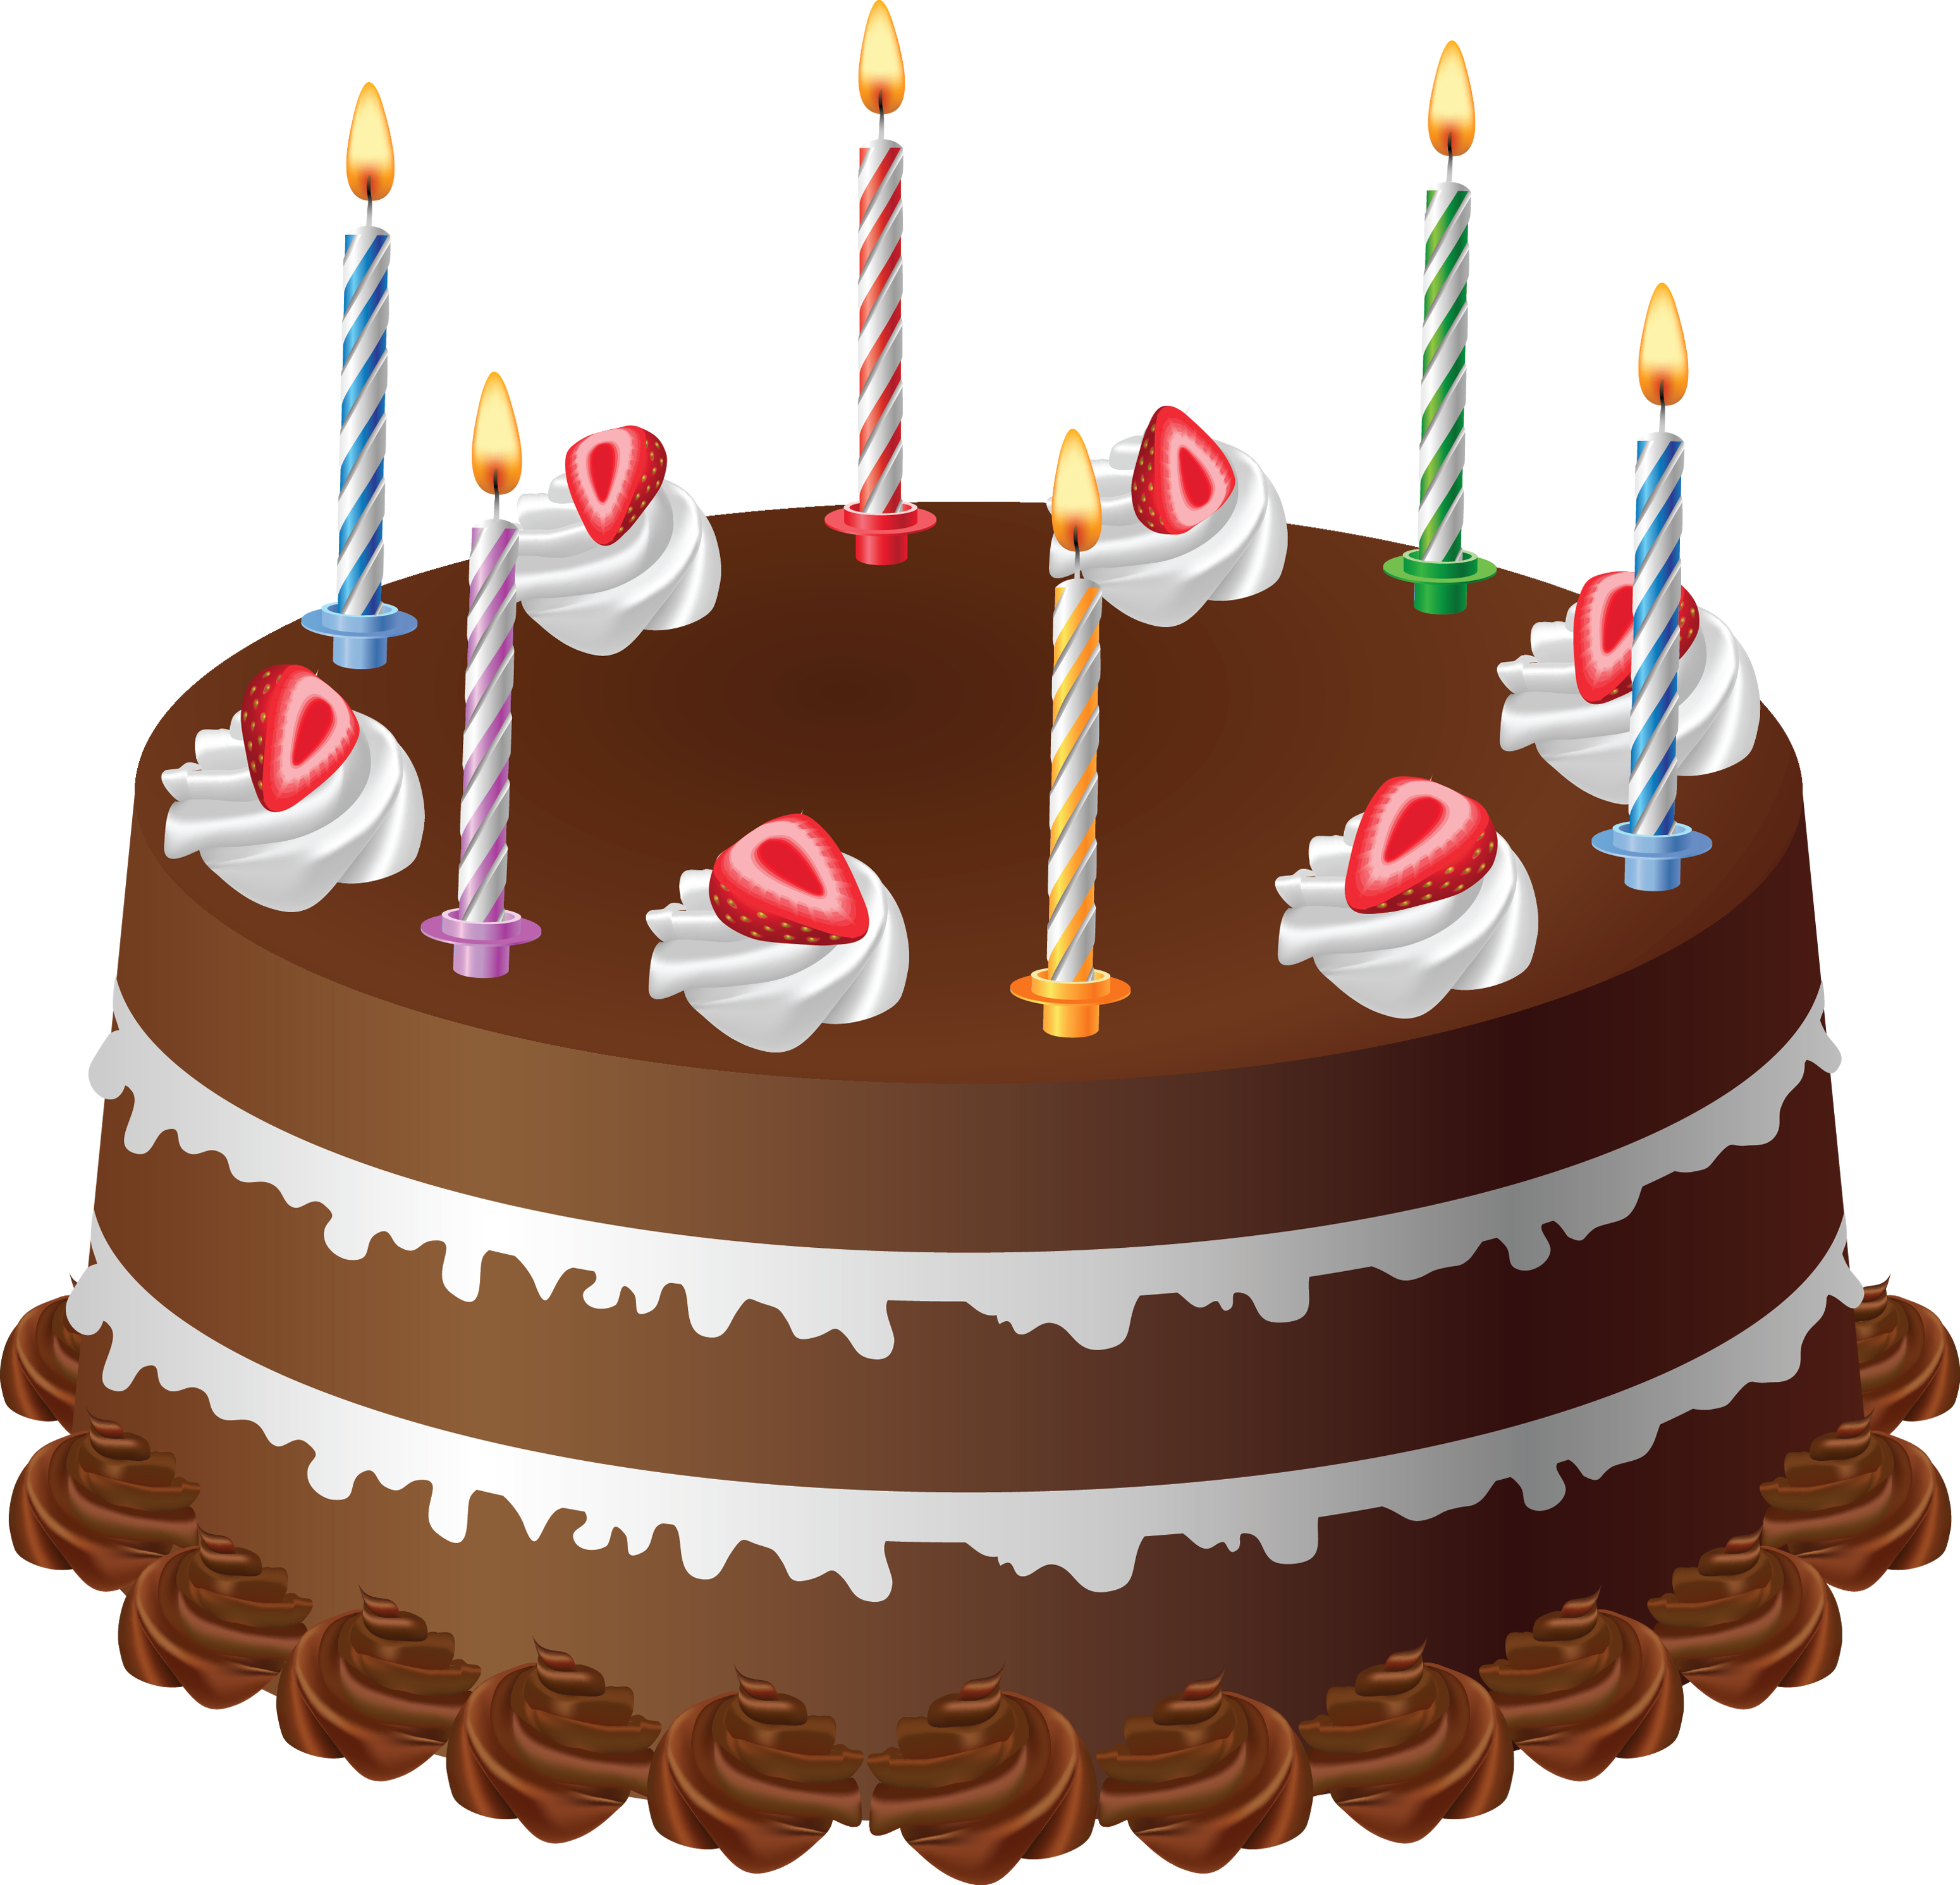 Happy birthday cake with candles clipart png black and white library Happy Birthday Cakes Png Image ~ The Best Collection of Quotes png black and white library